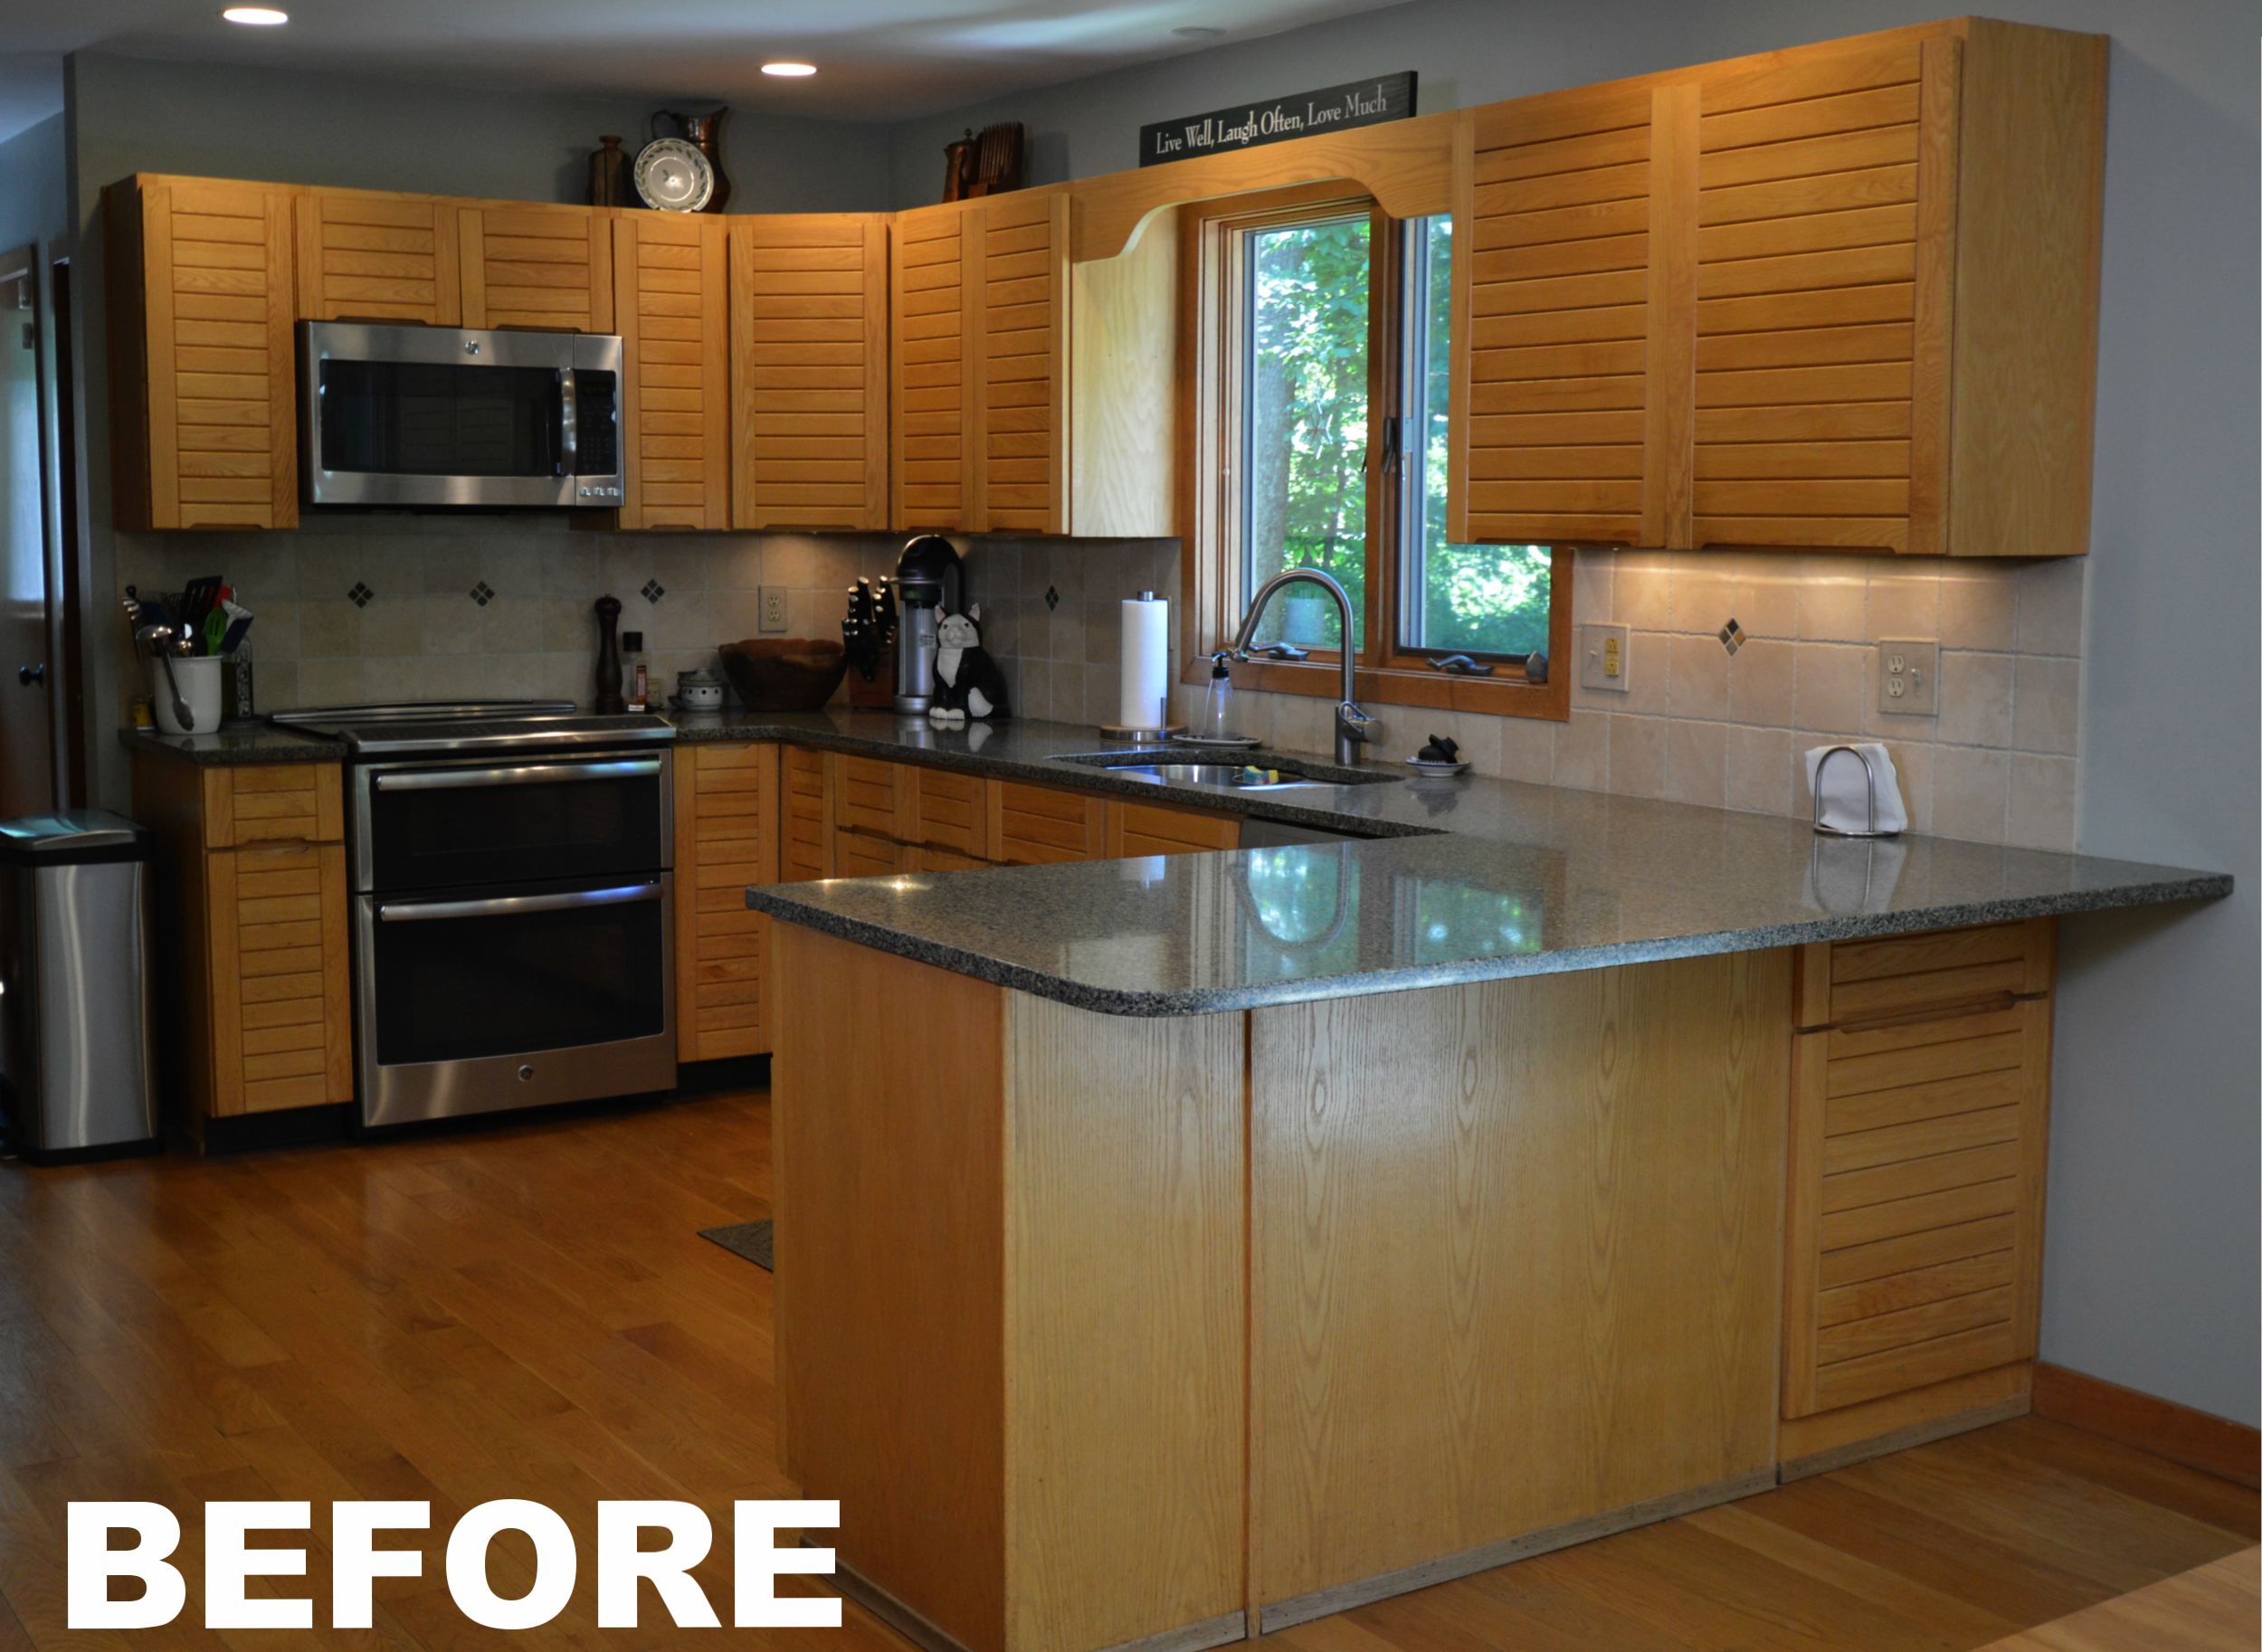 Ackley Cabinet - BEFORE Kitchen